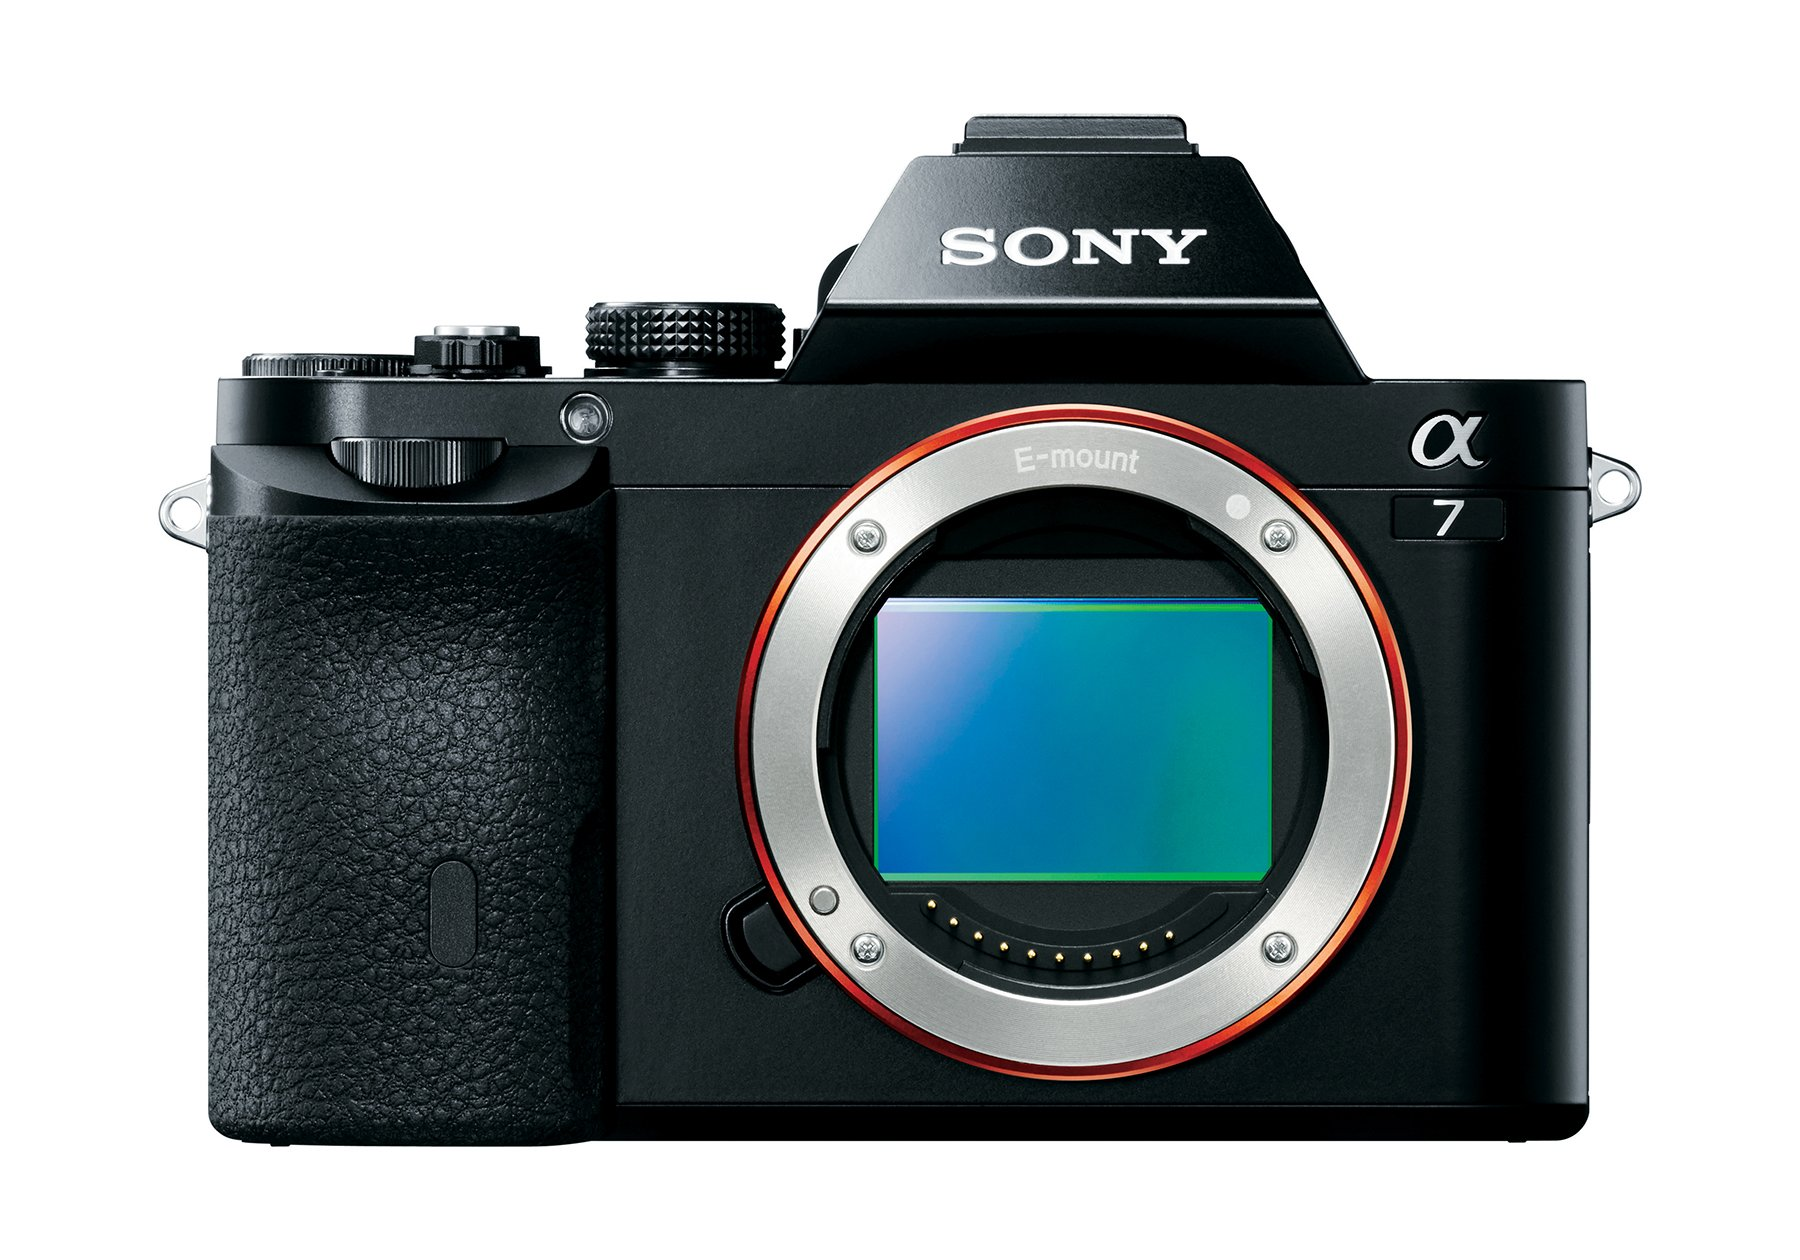 Sony a7 Full-Frame Mirrorless Digital Camera - Body Only by Sony